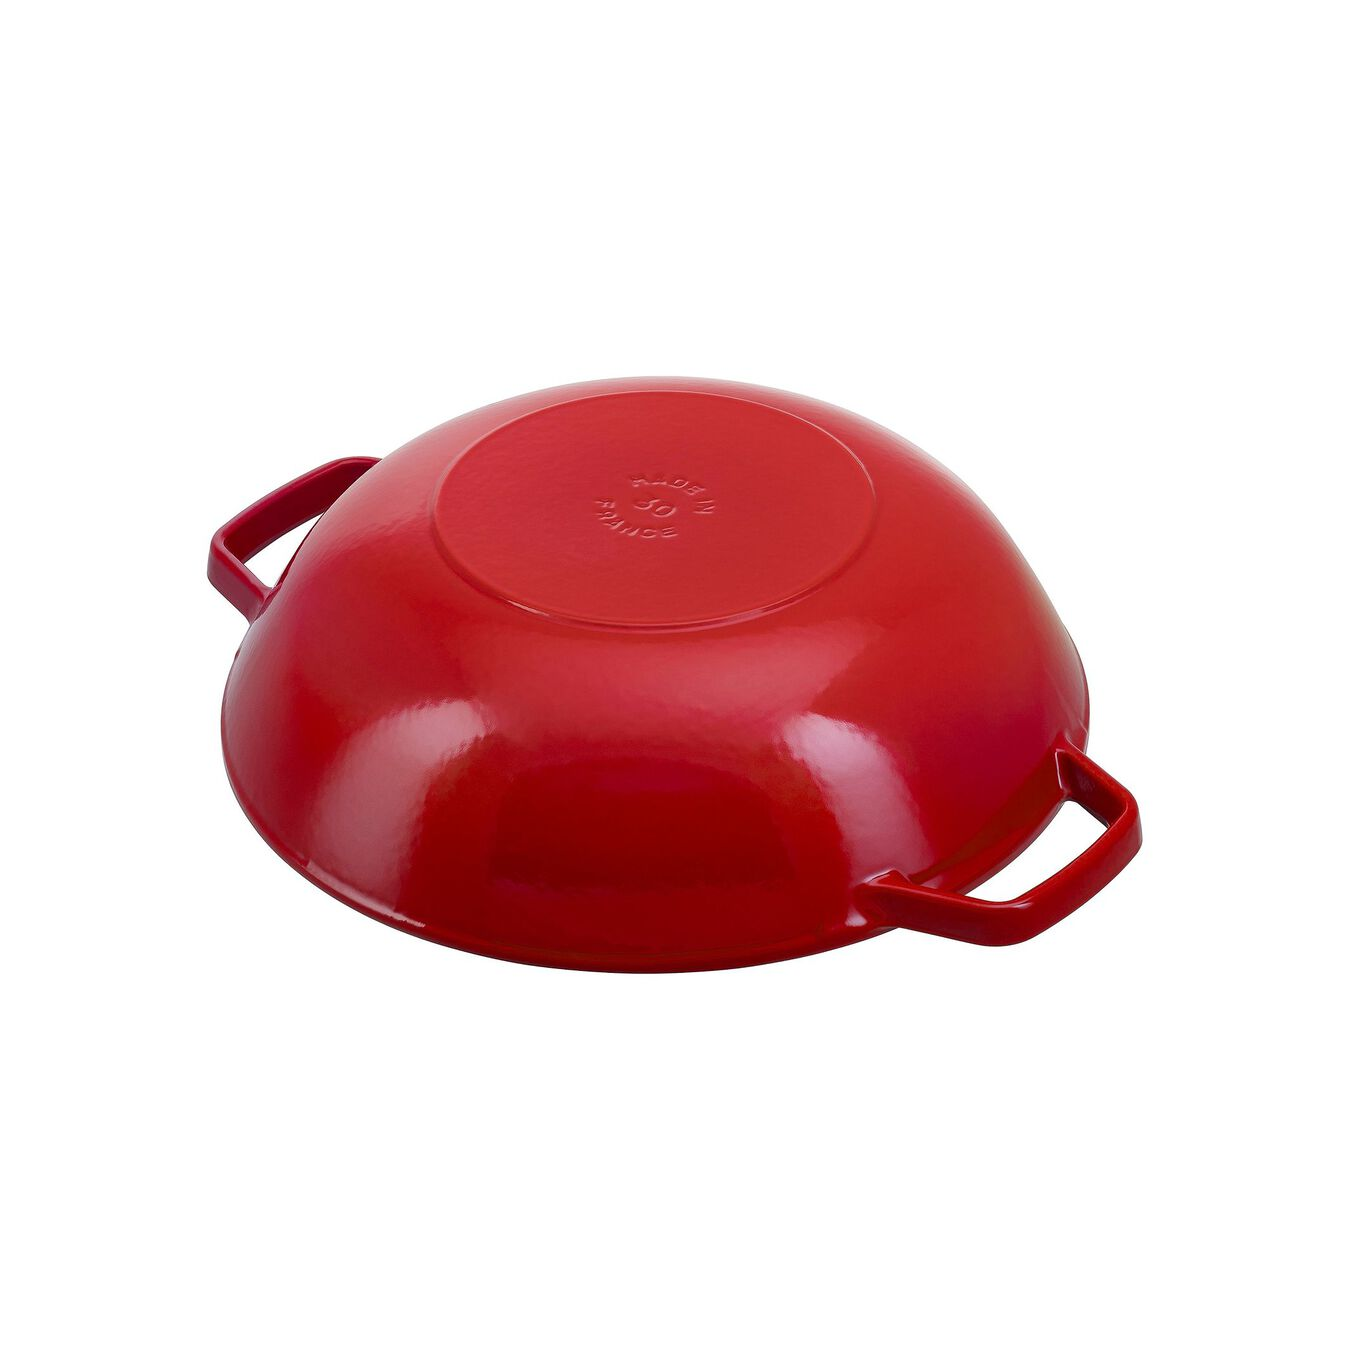 30 cm / 12 inch Wok with glass lid, cherry,,large 4